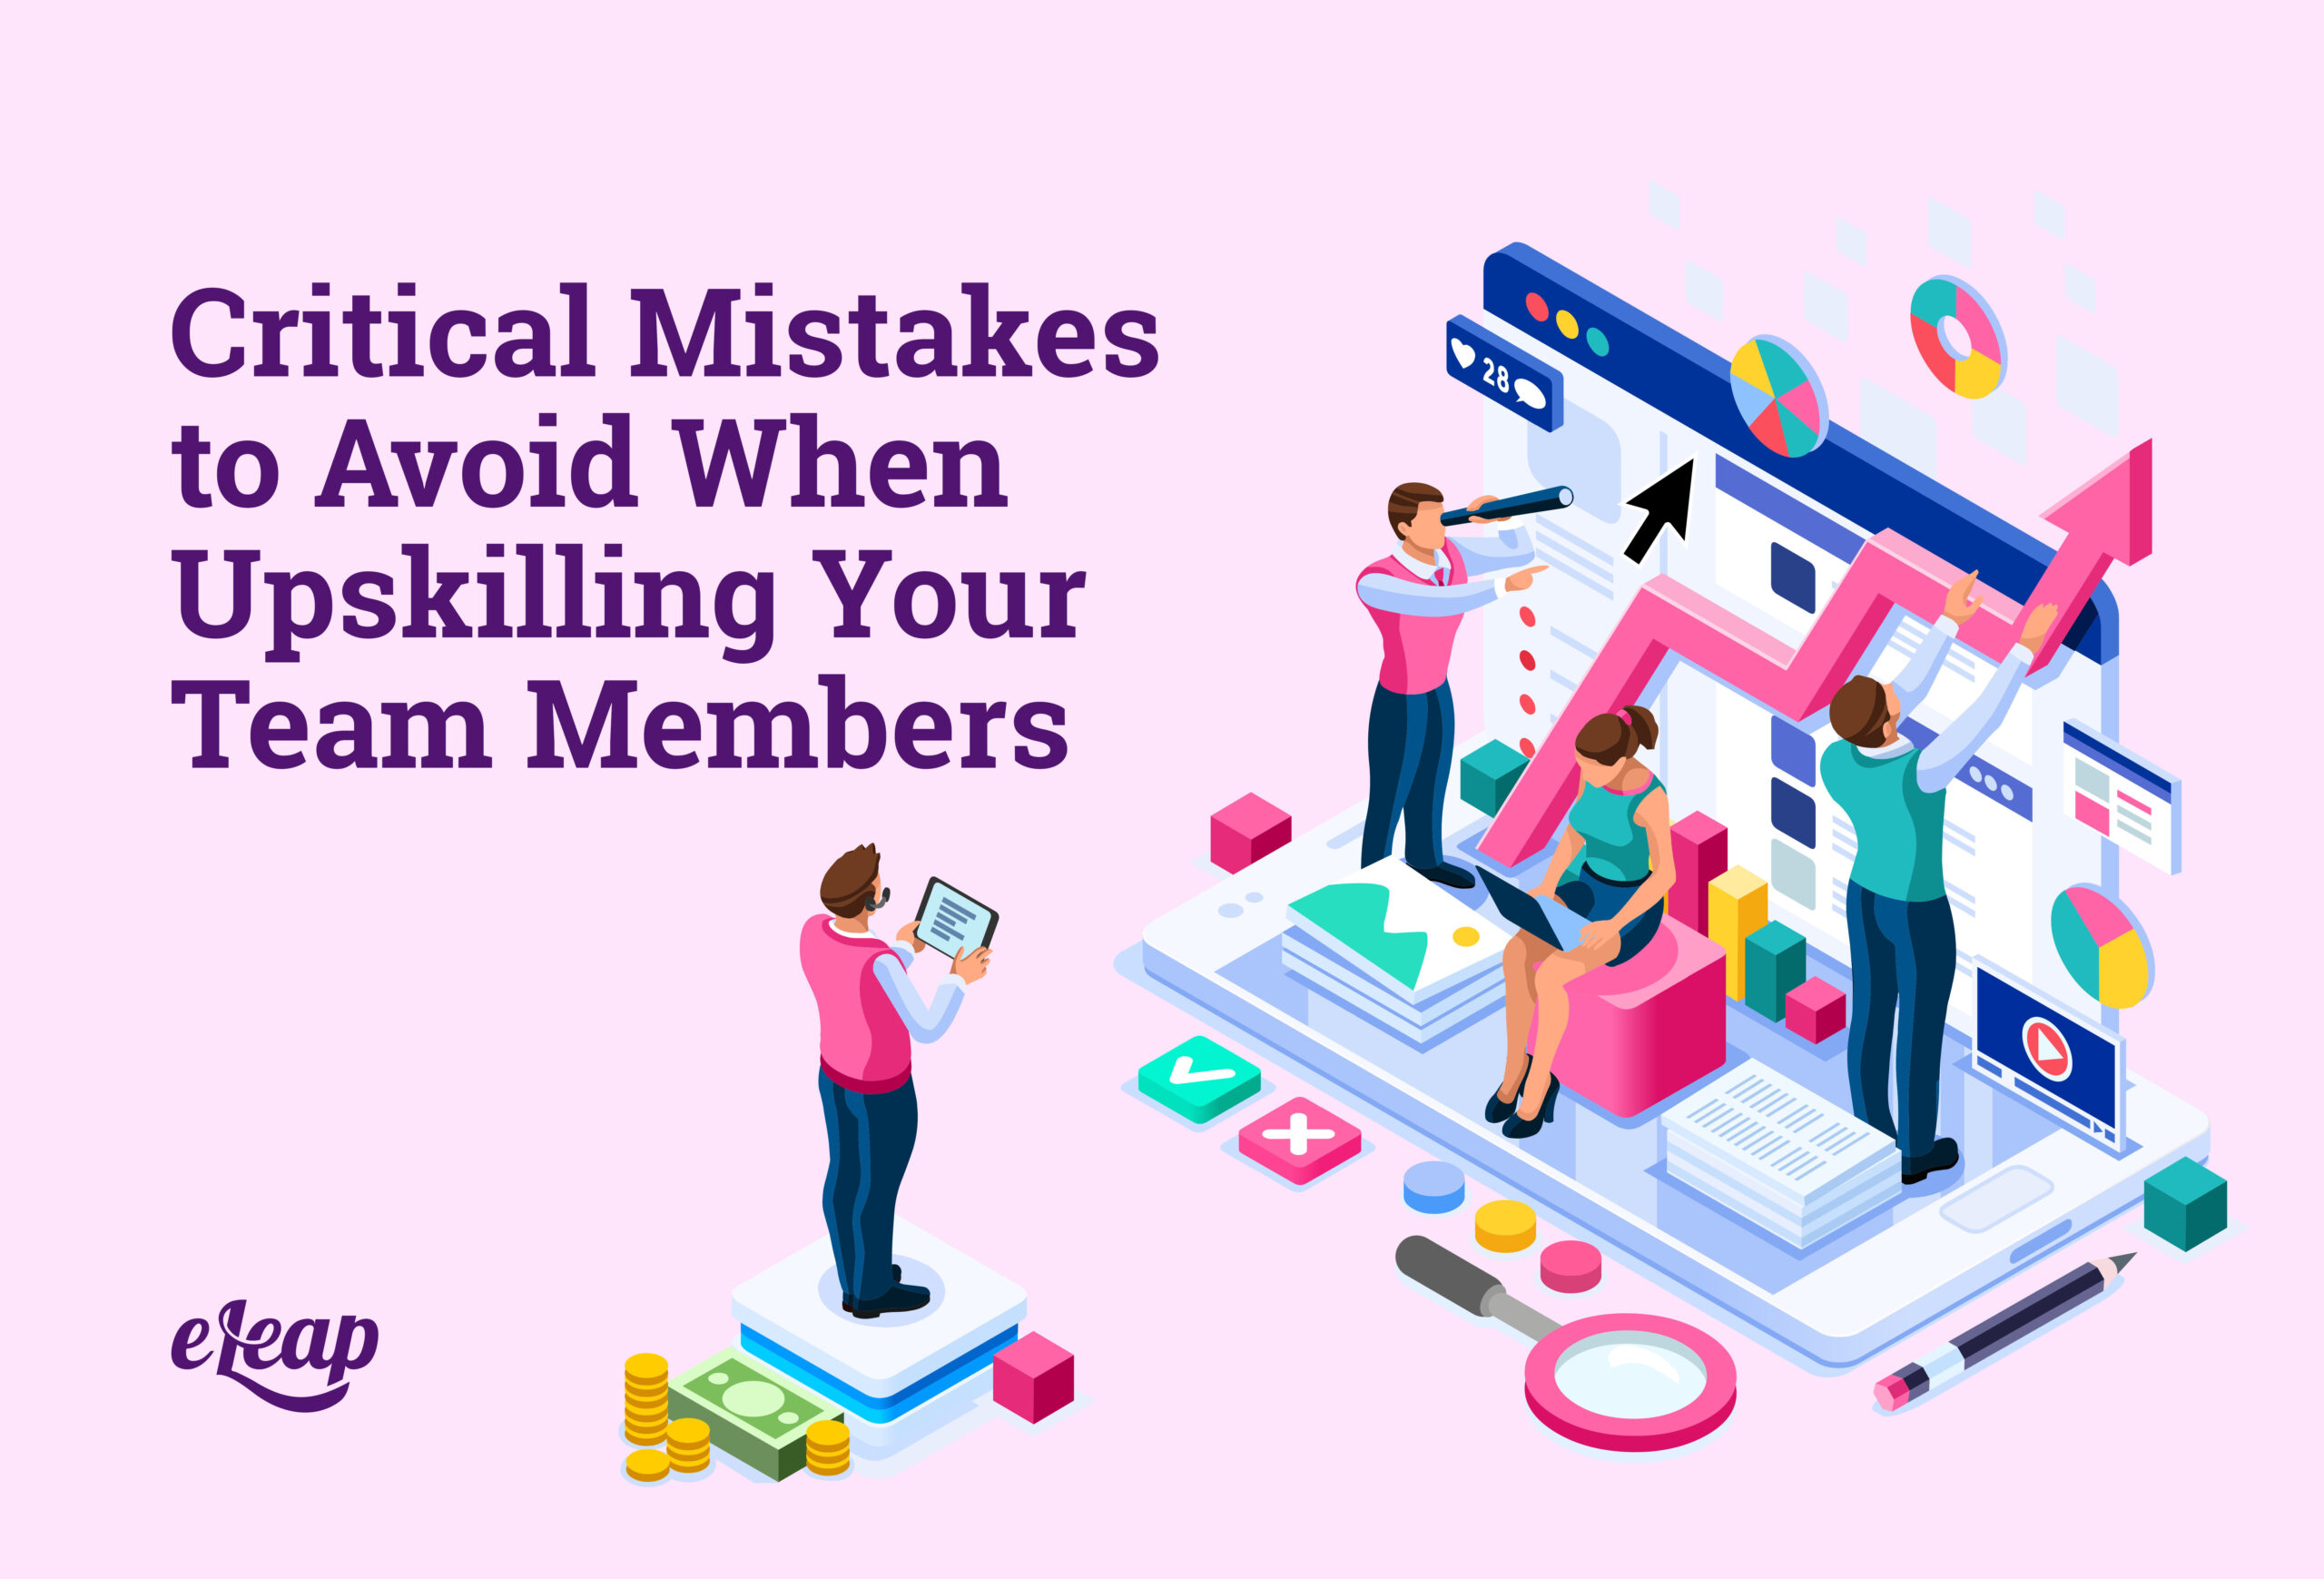 Critical Mistakes to Avoid When Upskilling Your Team Members